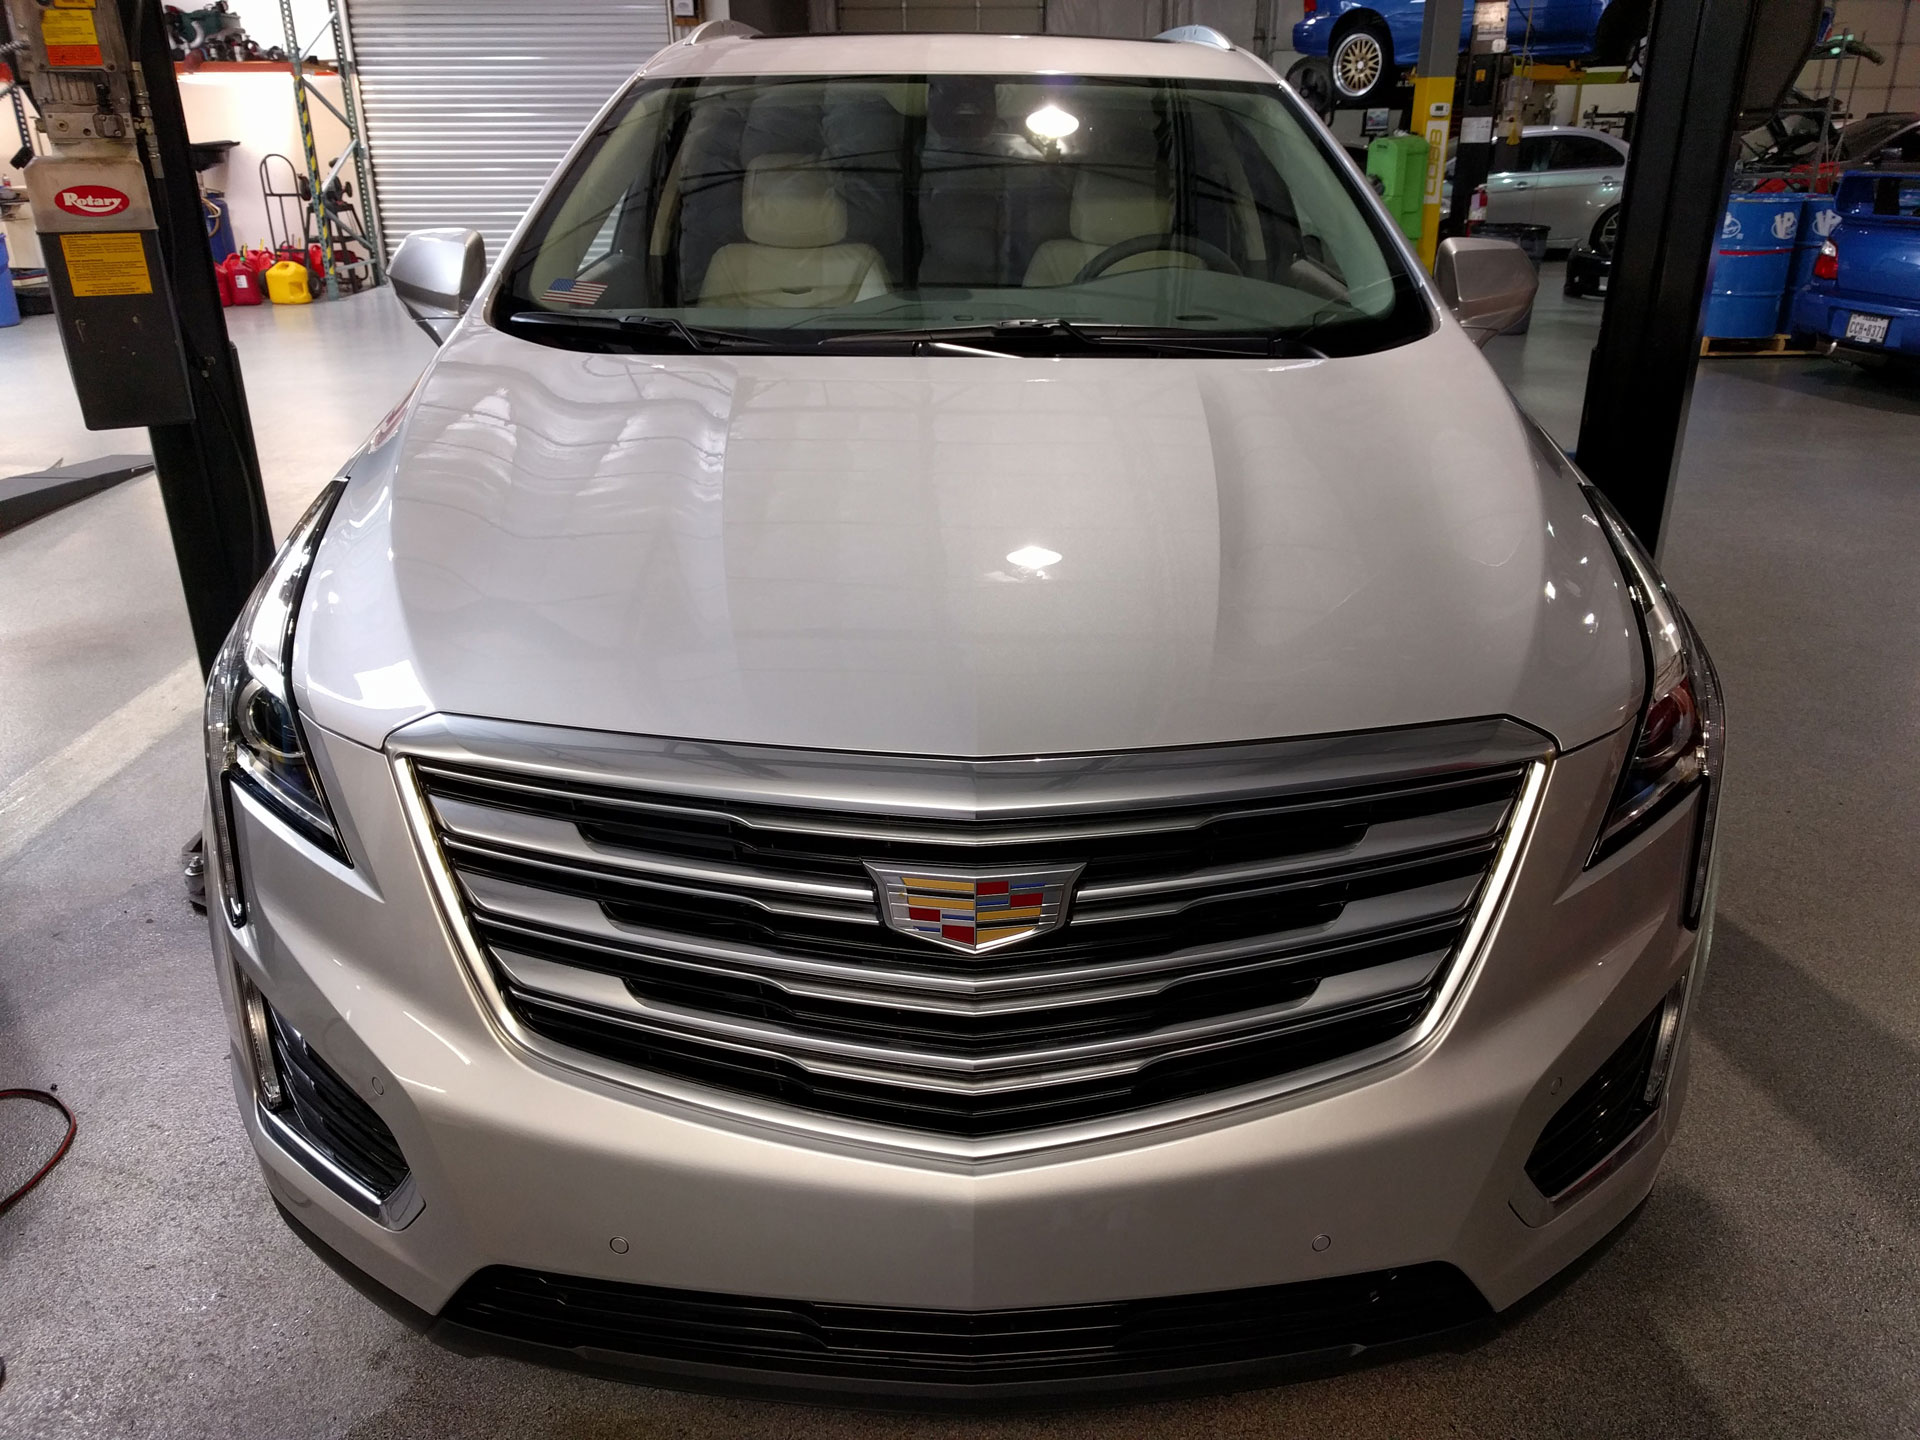 2017 Cadillac XT5 3M Pro Series Clear Bra Paint Protection